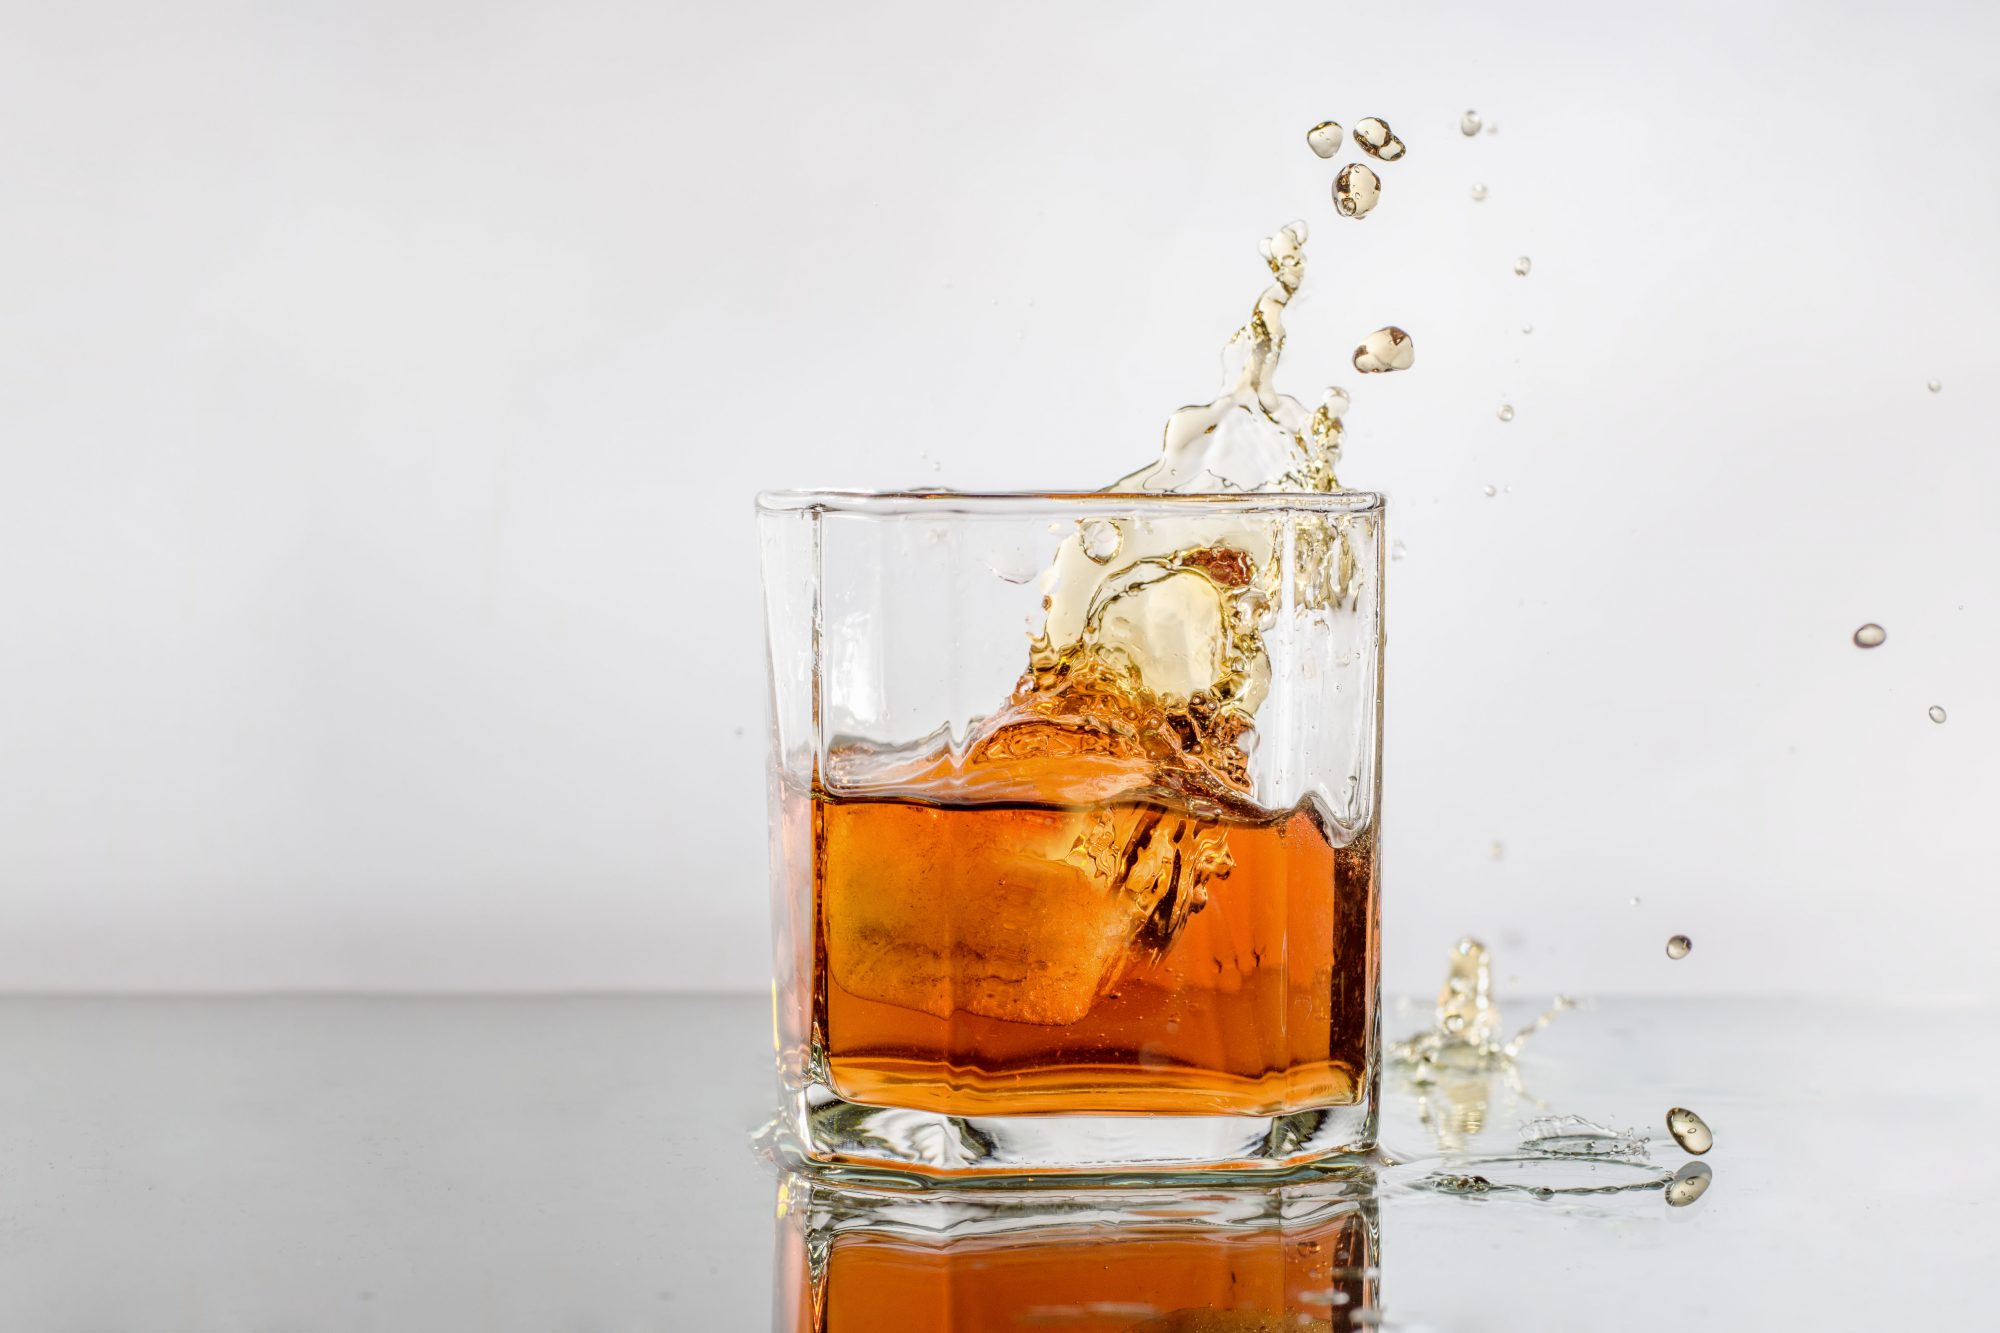 Whiskey vs. Whisky: What's the Difference?